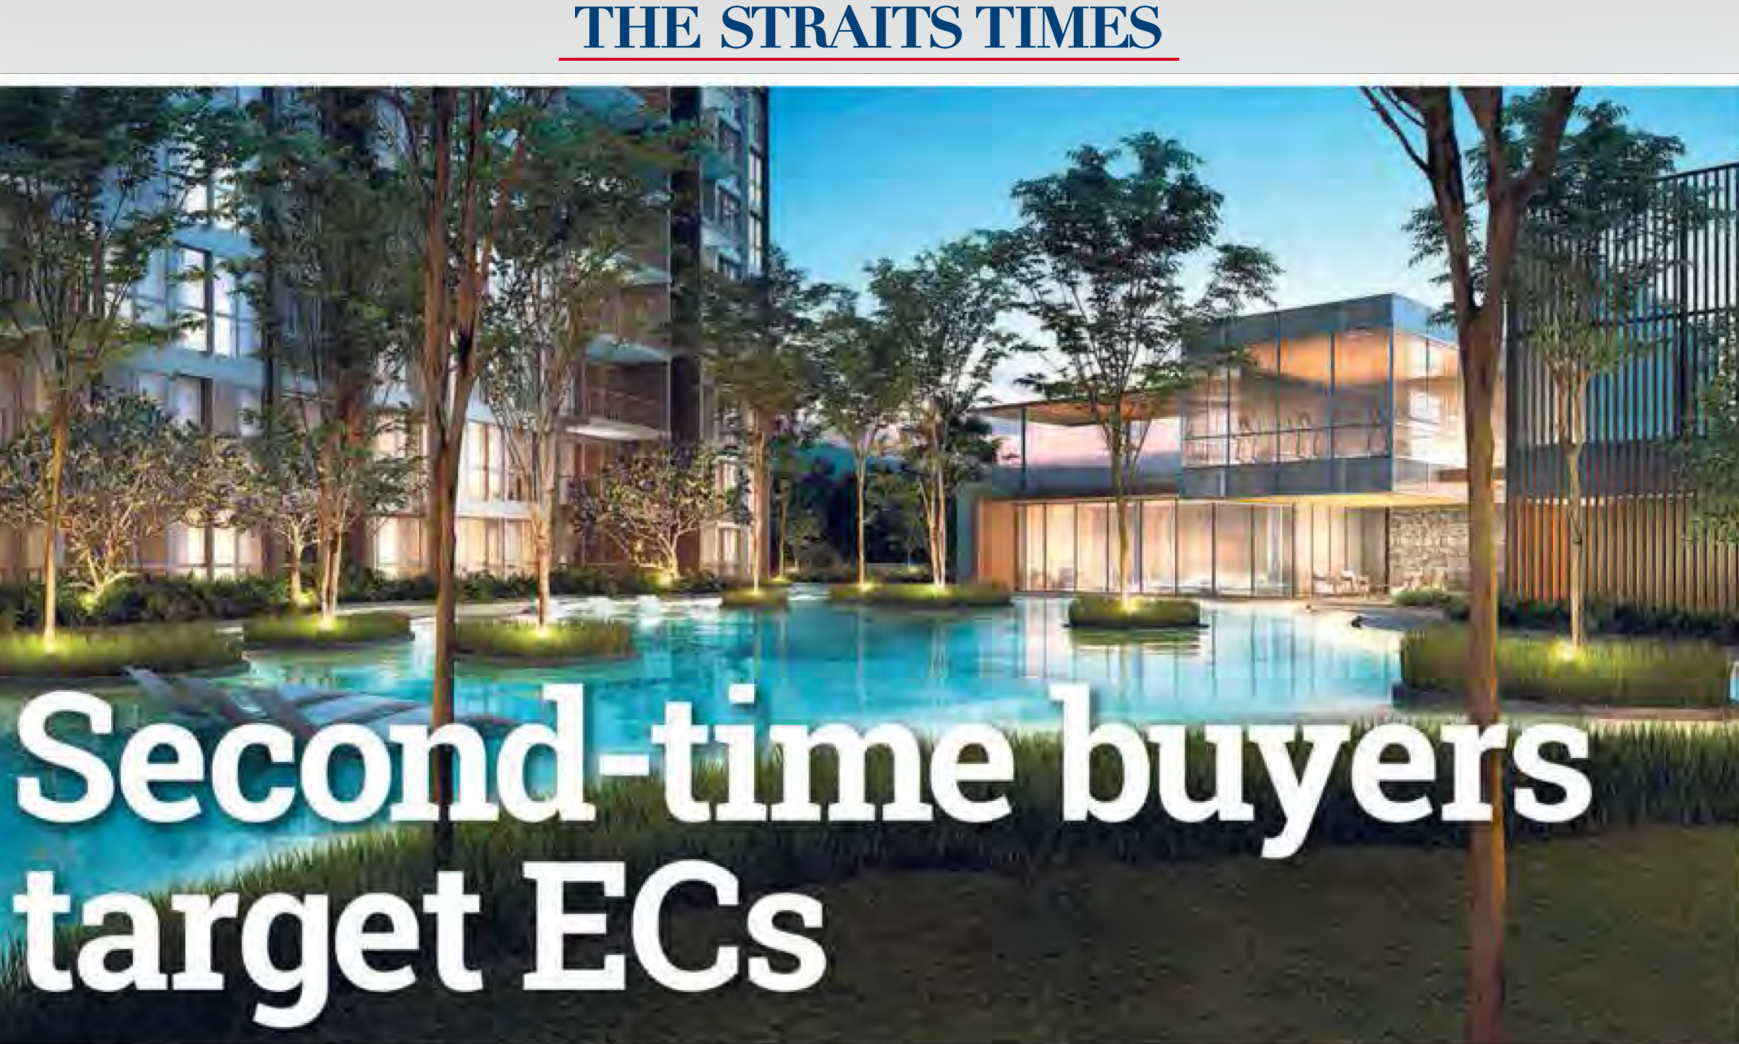 Second-time buyers target ECs